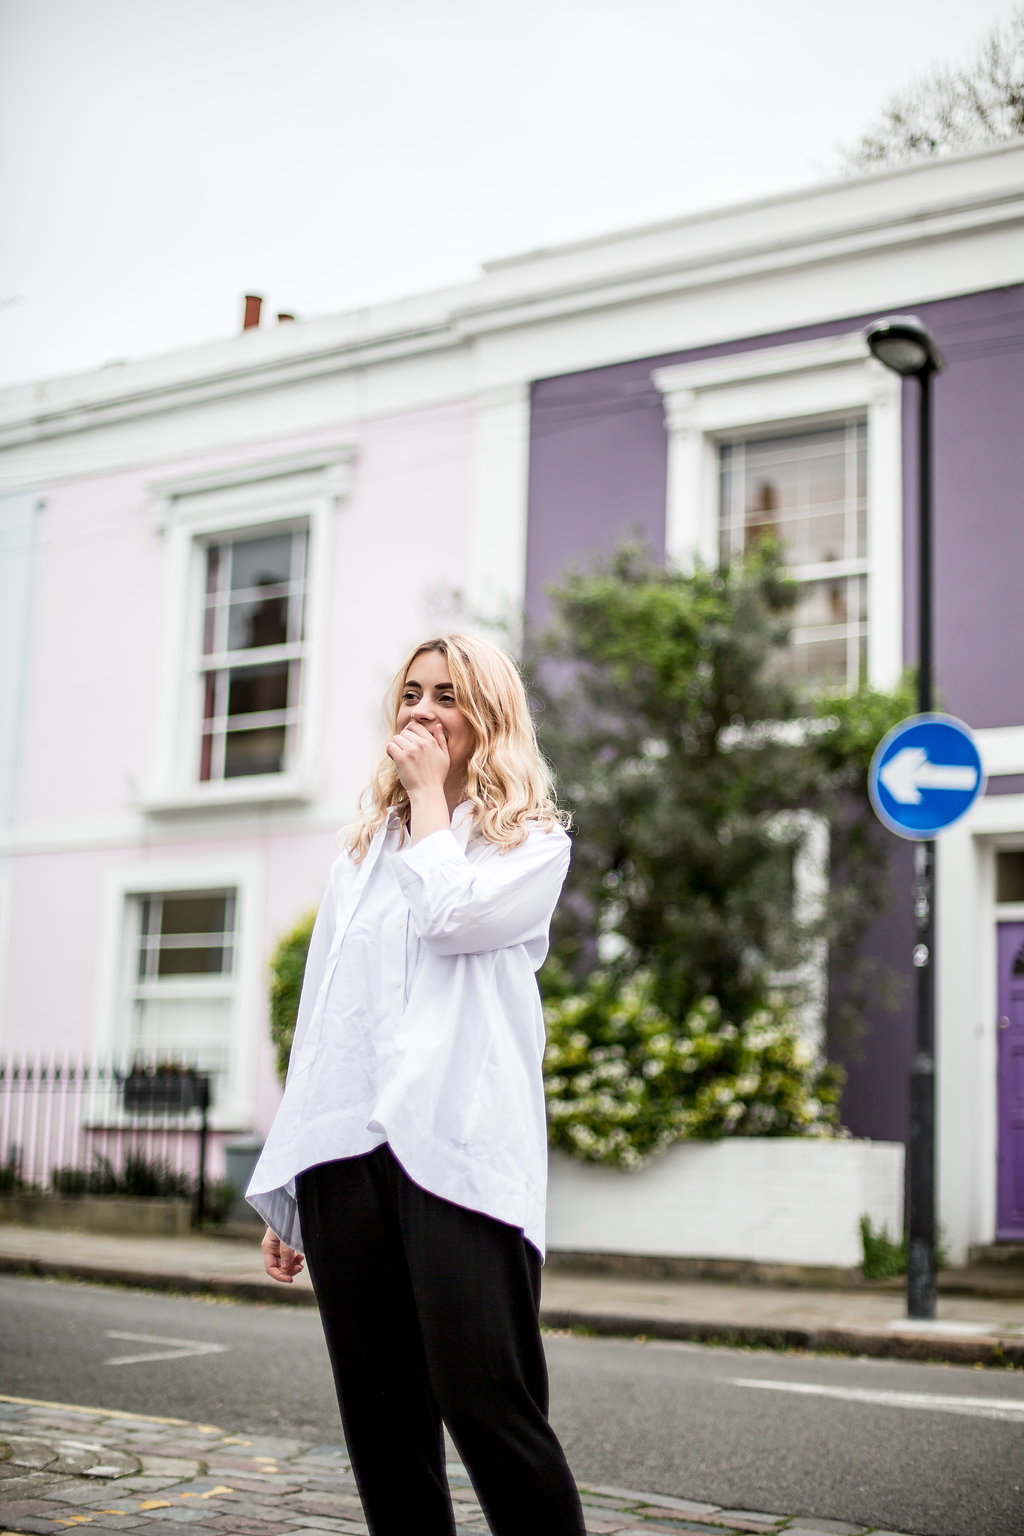 Organic cotton white hi-lo blouse // A Week Of Vibrant & Global Outfits With Francesca Willow From Ethical Unicorn on The Good Trade